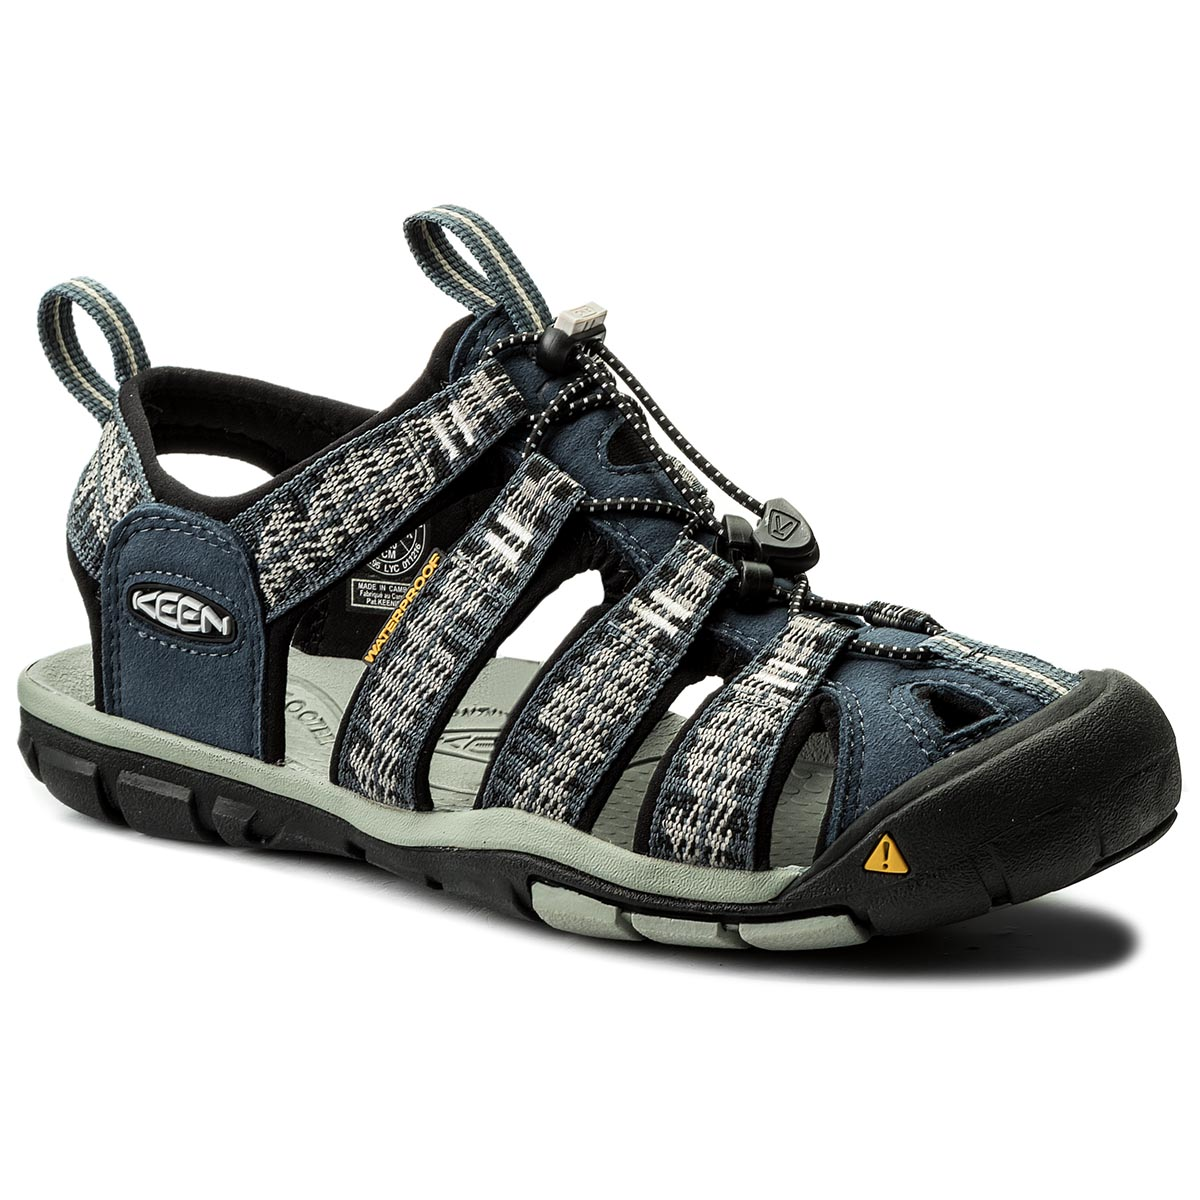 Sandale Keen - Clearwater Cnx 1016295 Midnight Navy/Vapor imagine